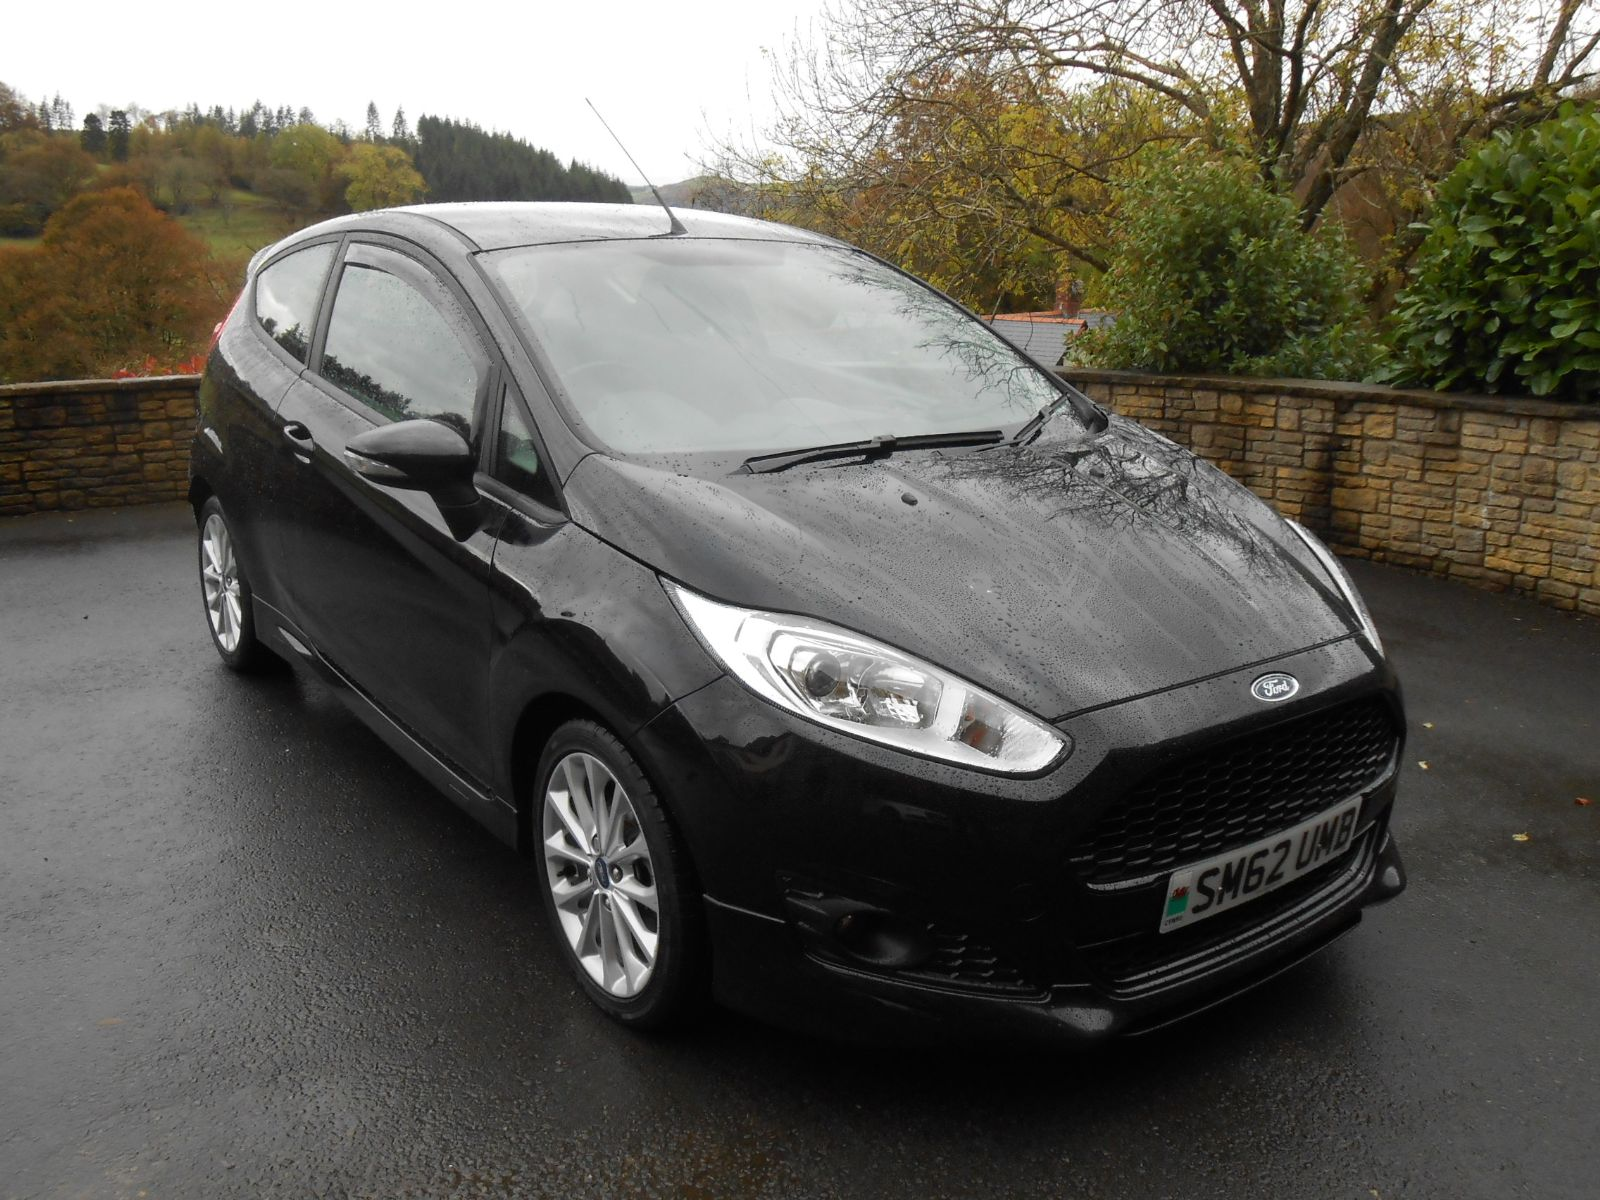 ford fiesta 1 0 ecoboost 125 zetec s 3 door car for sale llanidloes powys mid wales kevin jones. Black Bedroom Furniture Sets. Home Design Ideas